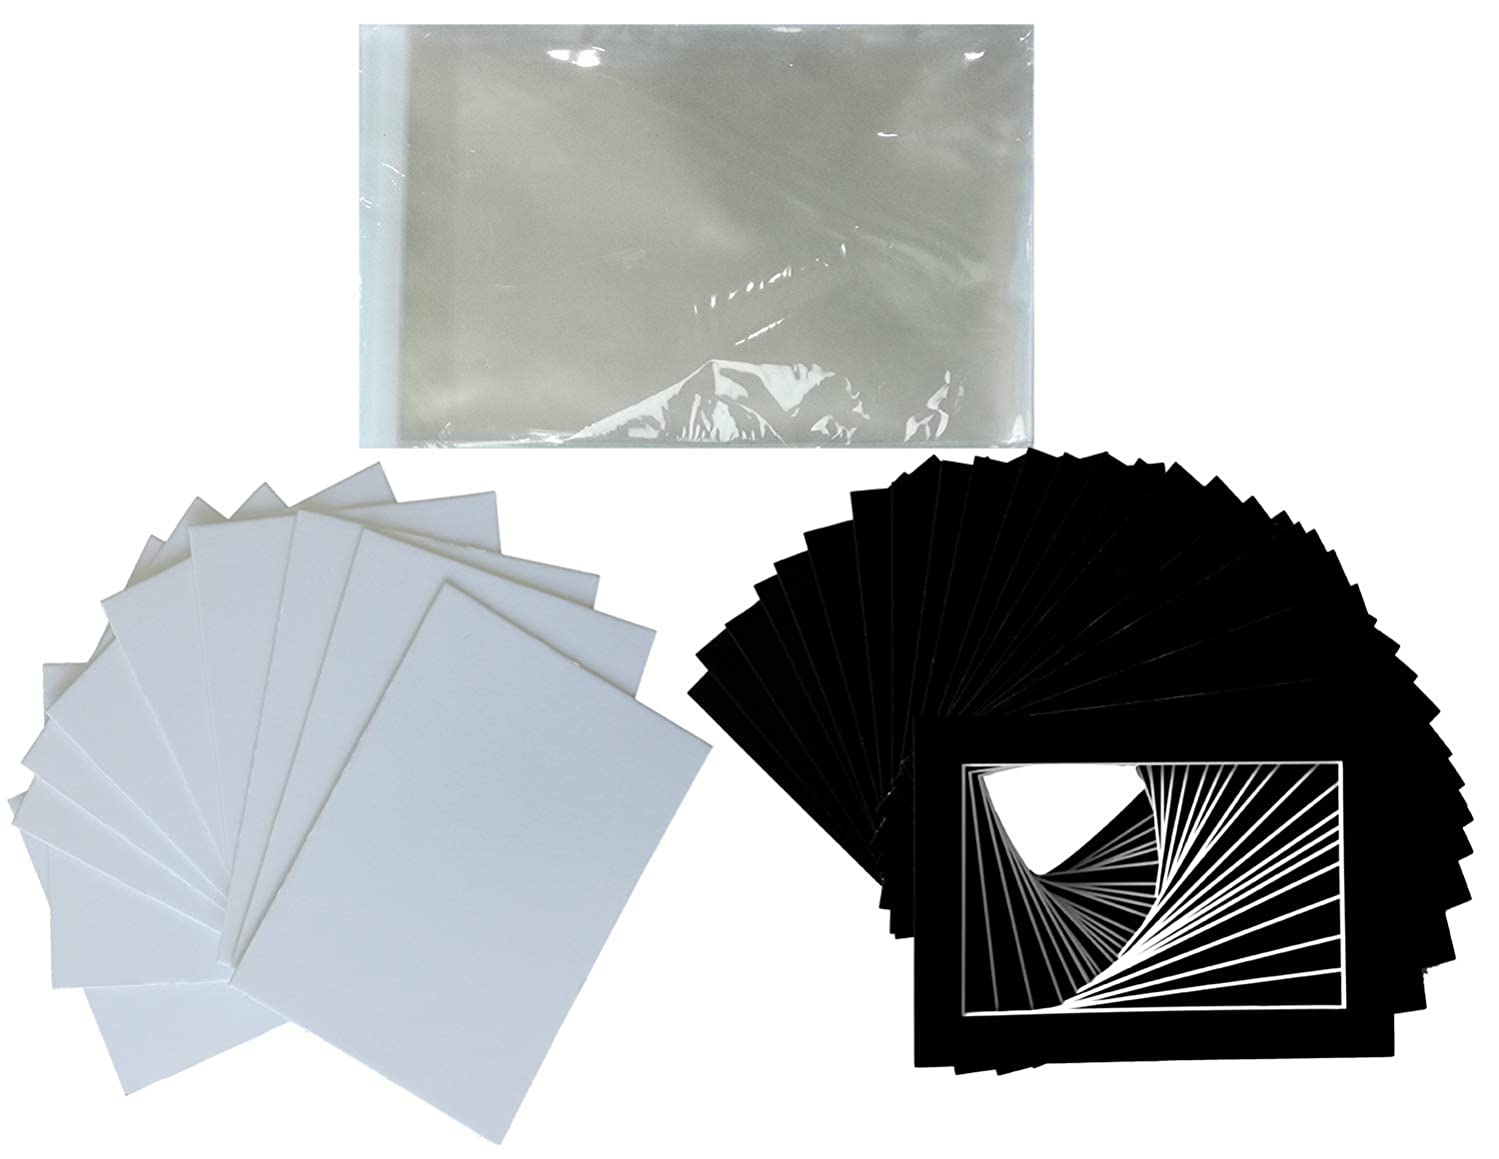 Hall of Frame Pack of 25 Black Pre-Cut Picture Mat 5x7 inches for 4x6 Photo White Core Bevel Cut Mattes Sets + Backing Board + Clear Plastic Bags (Pack of 25 Black 5x7 Complete Set)